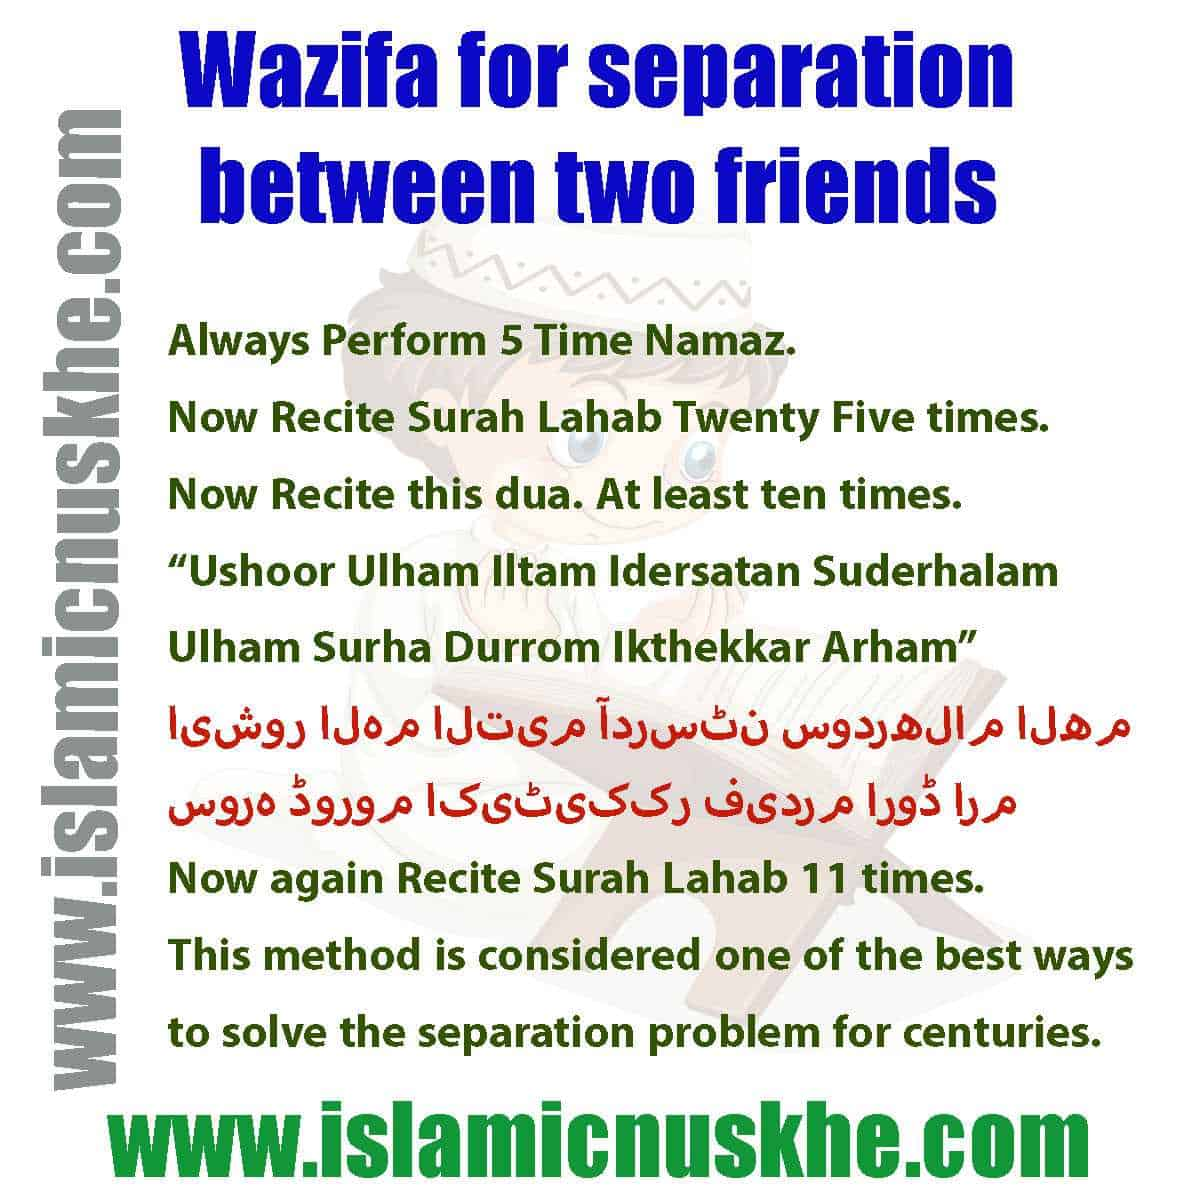 Here is Wazifa for separation between two friends Step by Step